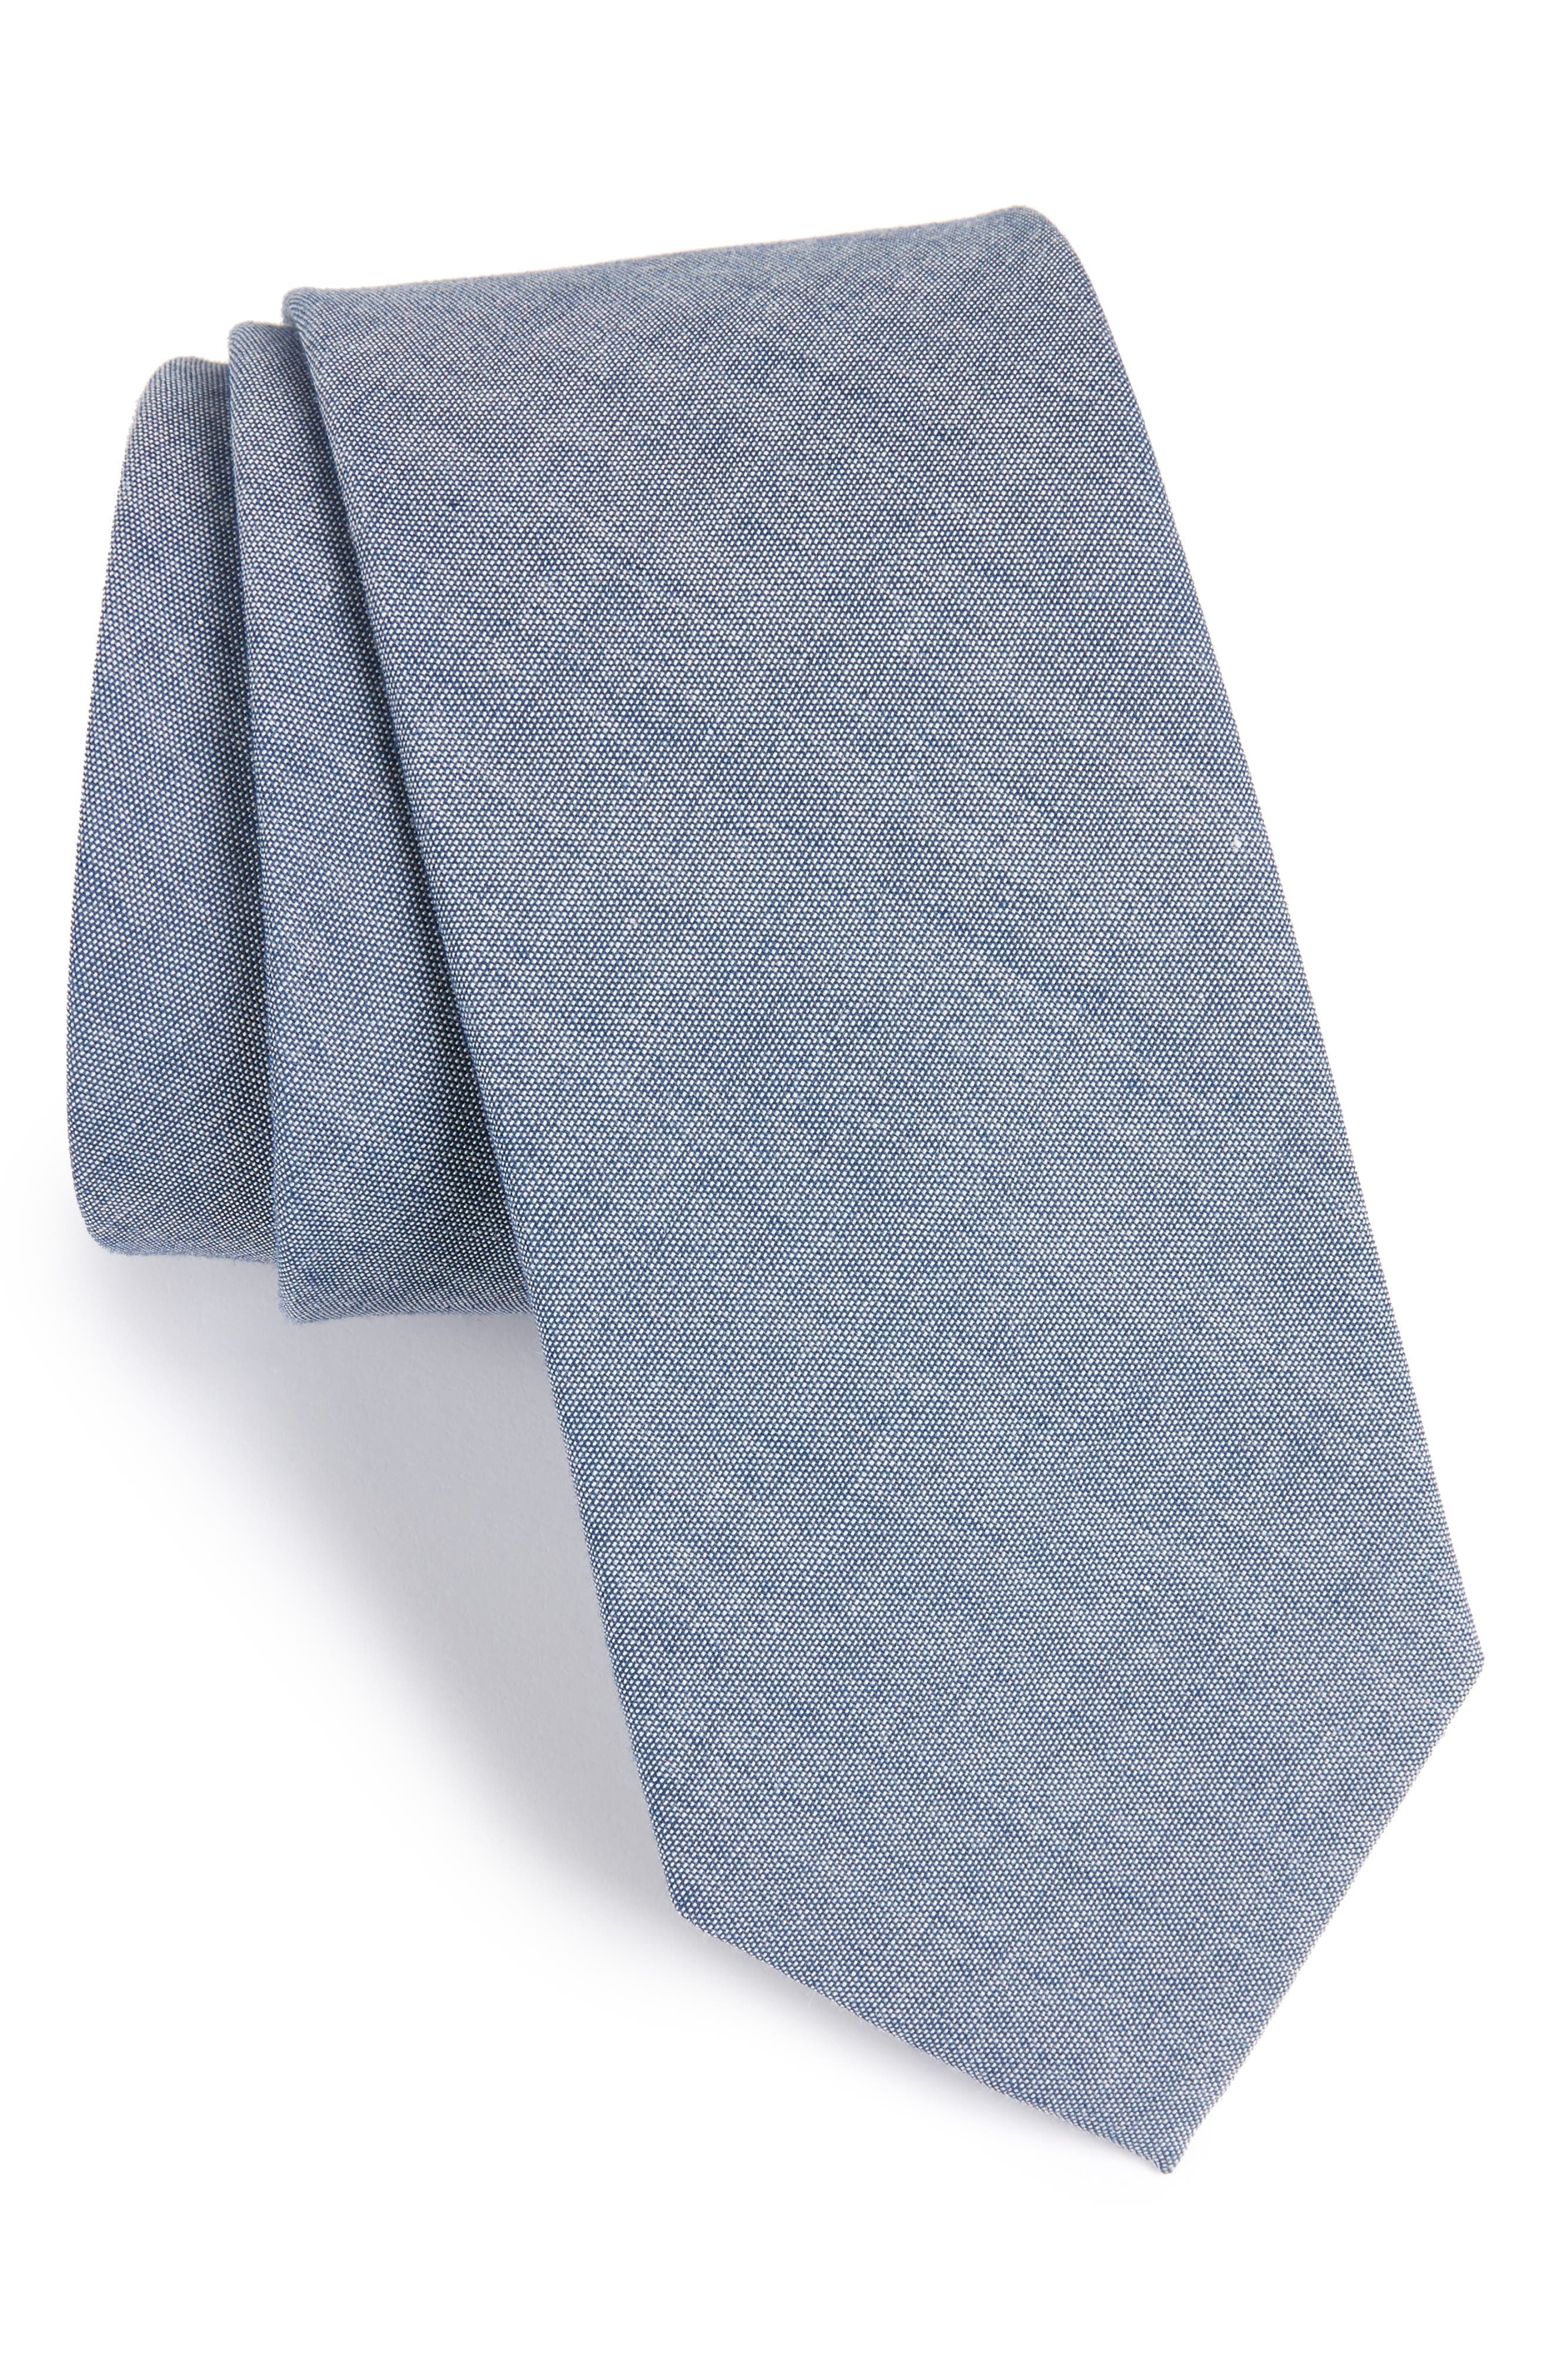 Alternate Image 1 Selected - The Tie Bar Classic Chambray Cotton Tie